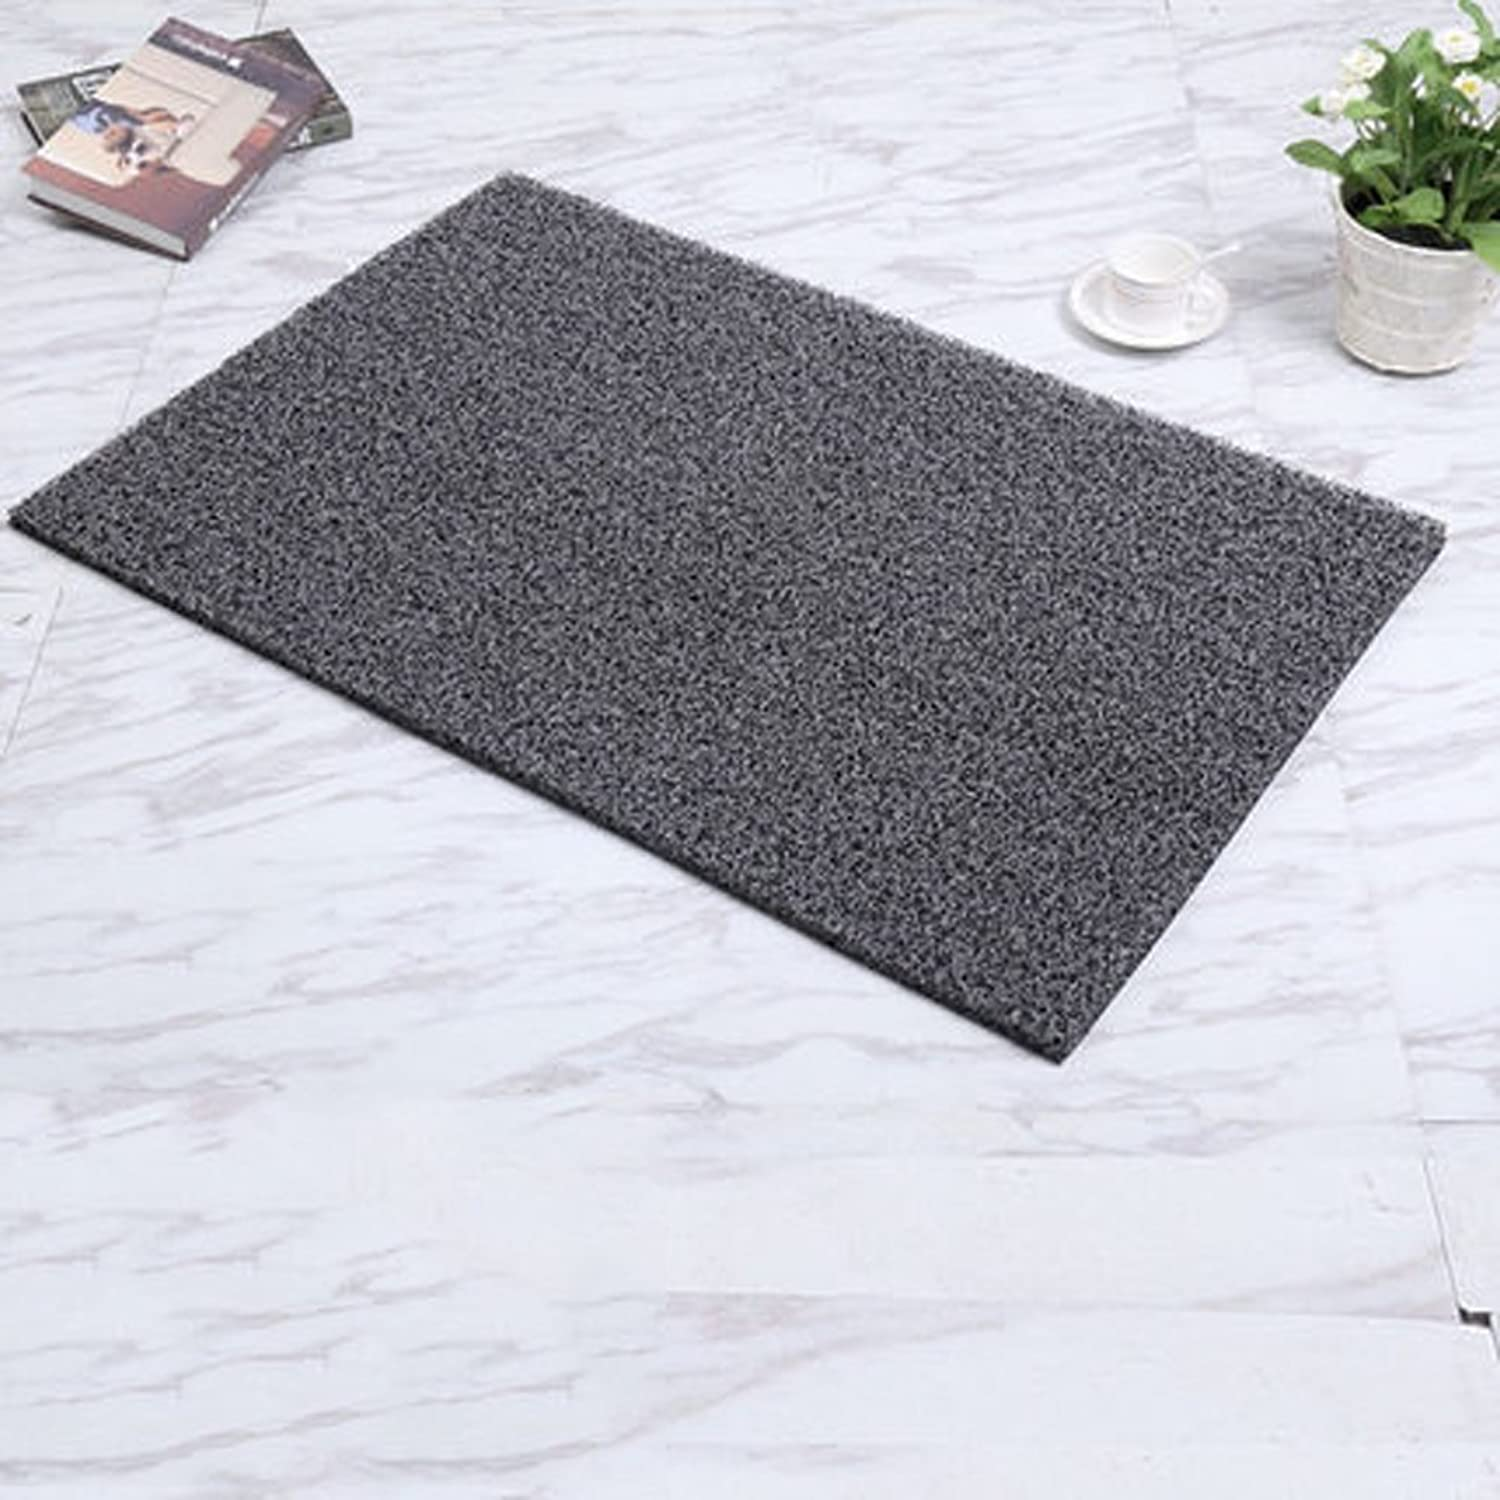 Modern Entrance Mat Heavy Duty Doormat Indoor Mats for Entryway Dirt Trapper Mats-Non Slip,Durable,Tough-Dark Grey 60x100cm(24x39inch)